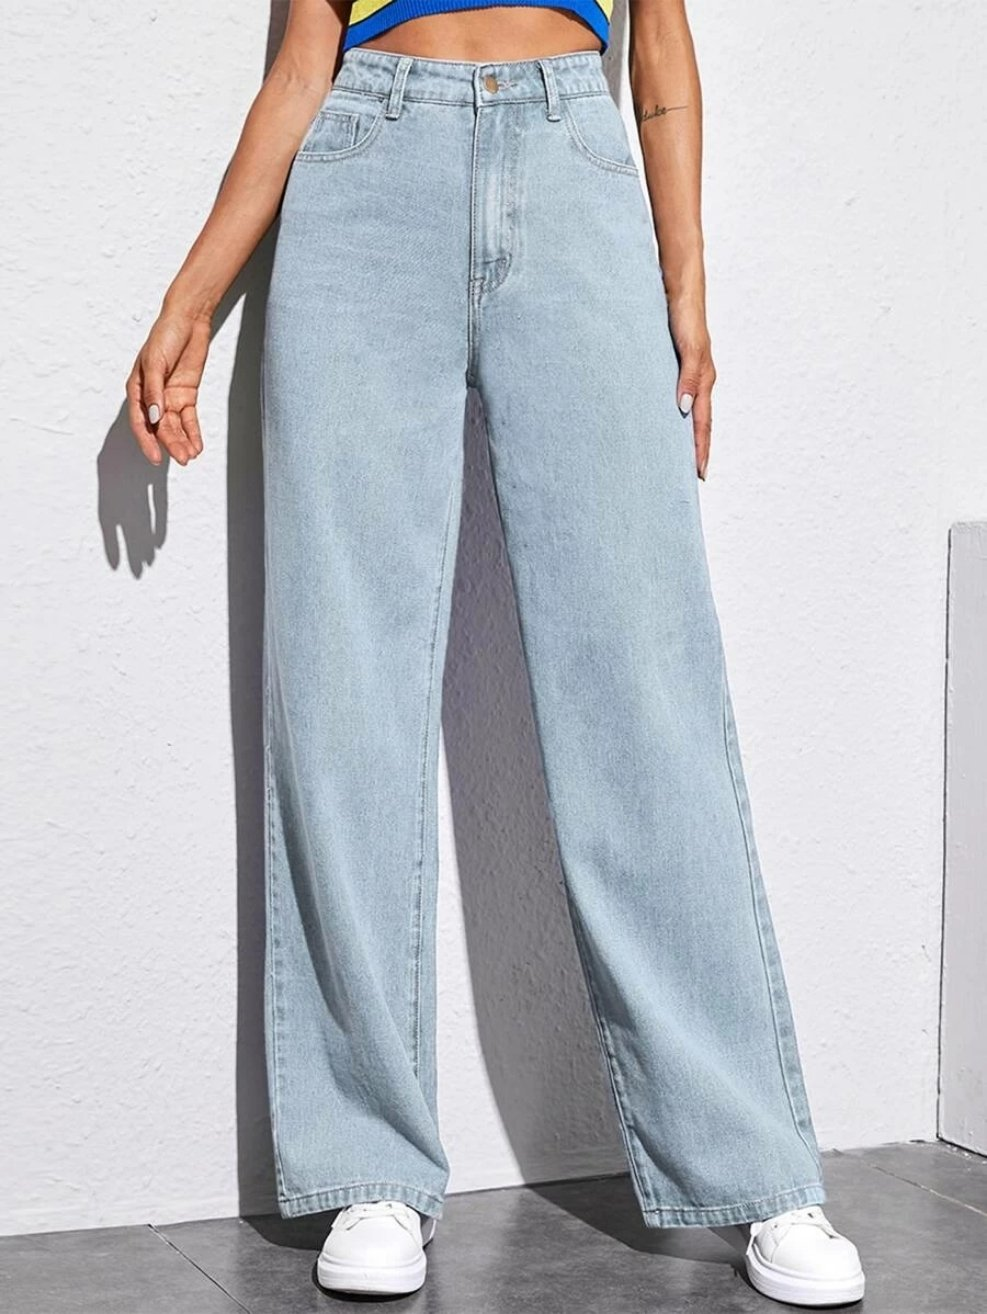 Old School Jeans - Boho Buys